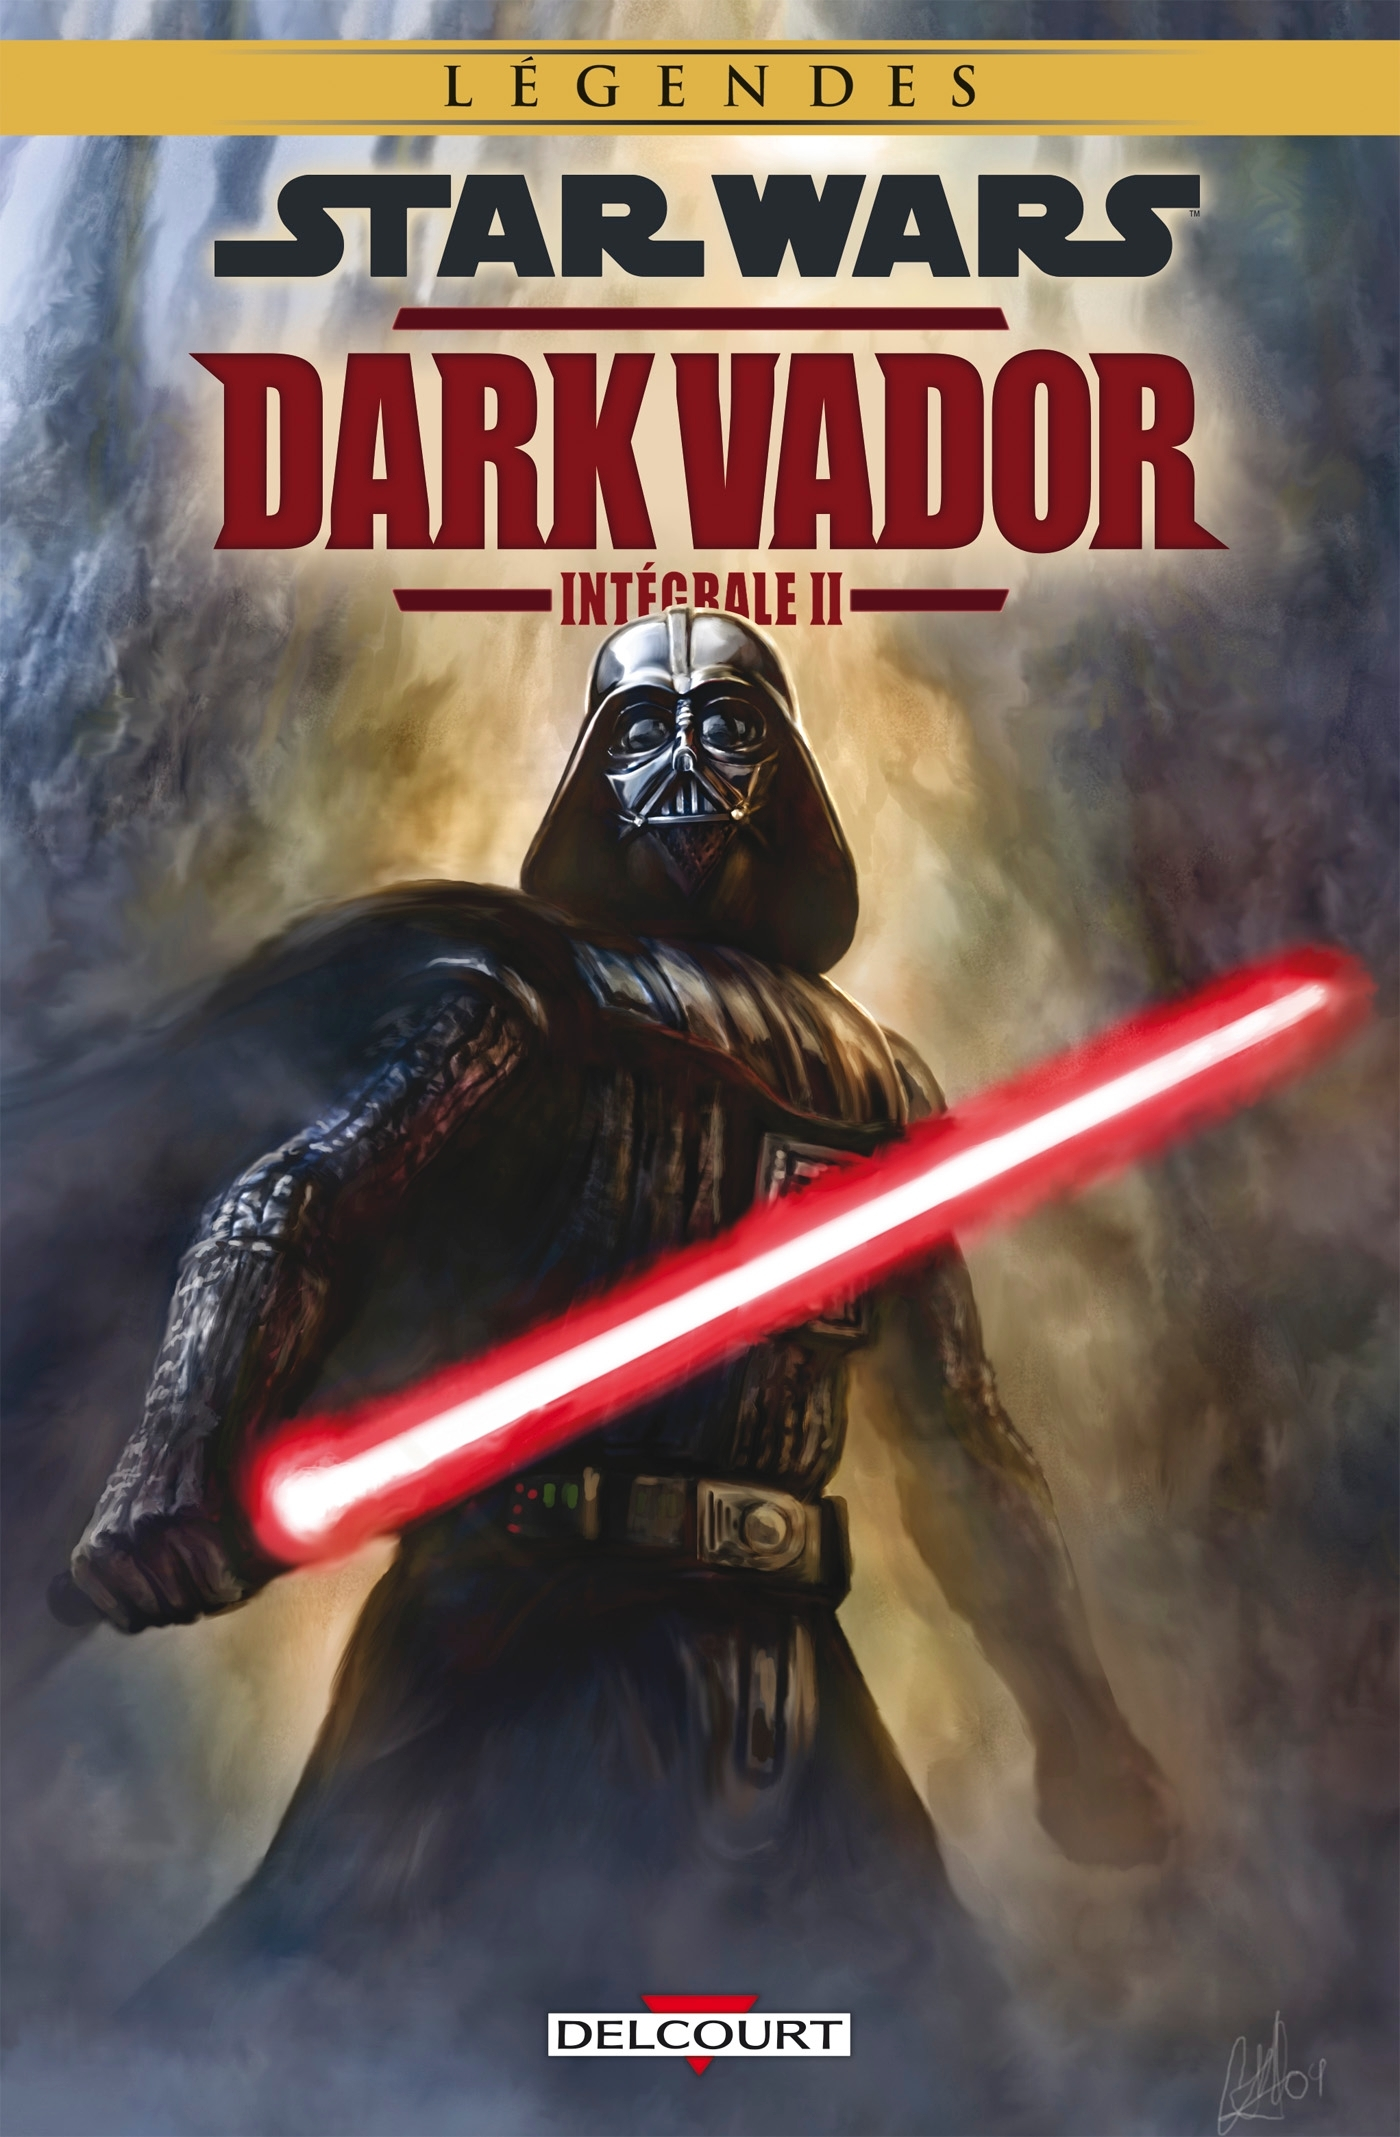 STAR WARS - DARK VADOR INTEGRALE VOLUME II